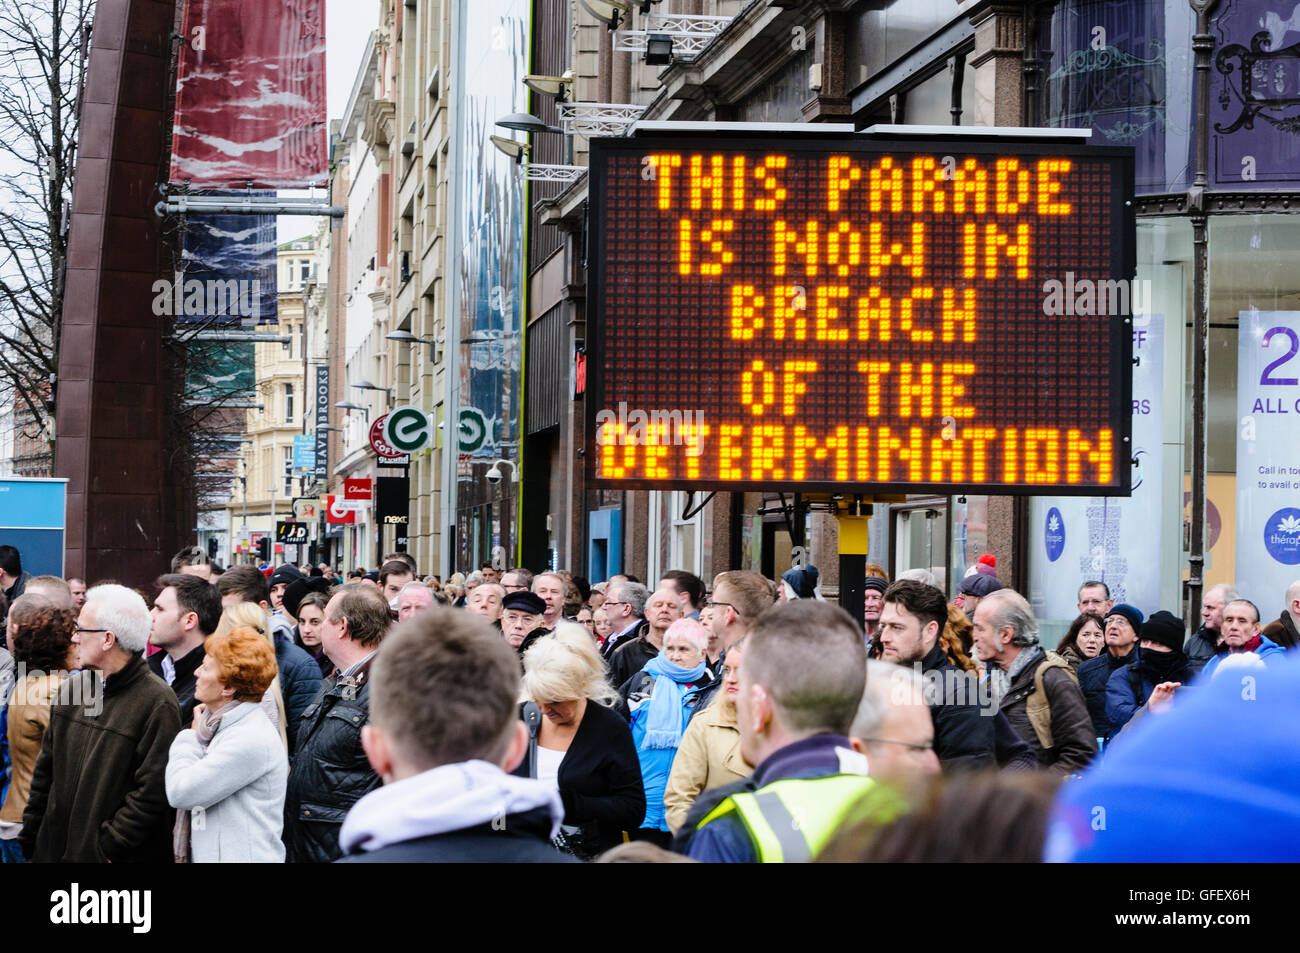 Belfast, Northern Ireland - 30th Nov 2013 - PSNI use illuminated signs to inform protesters that they are therefore - Stock Image